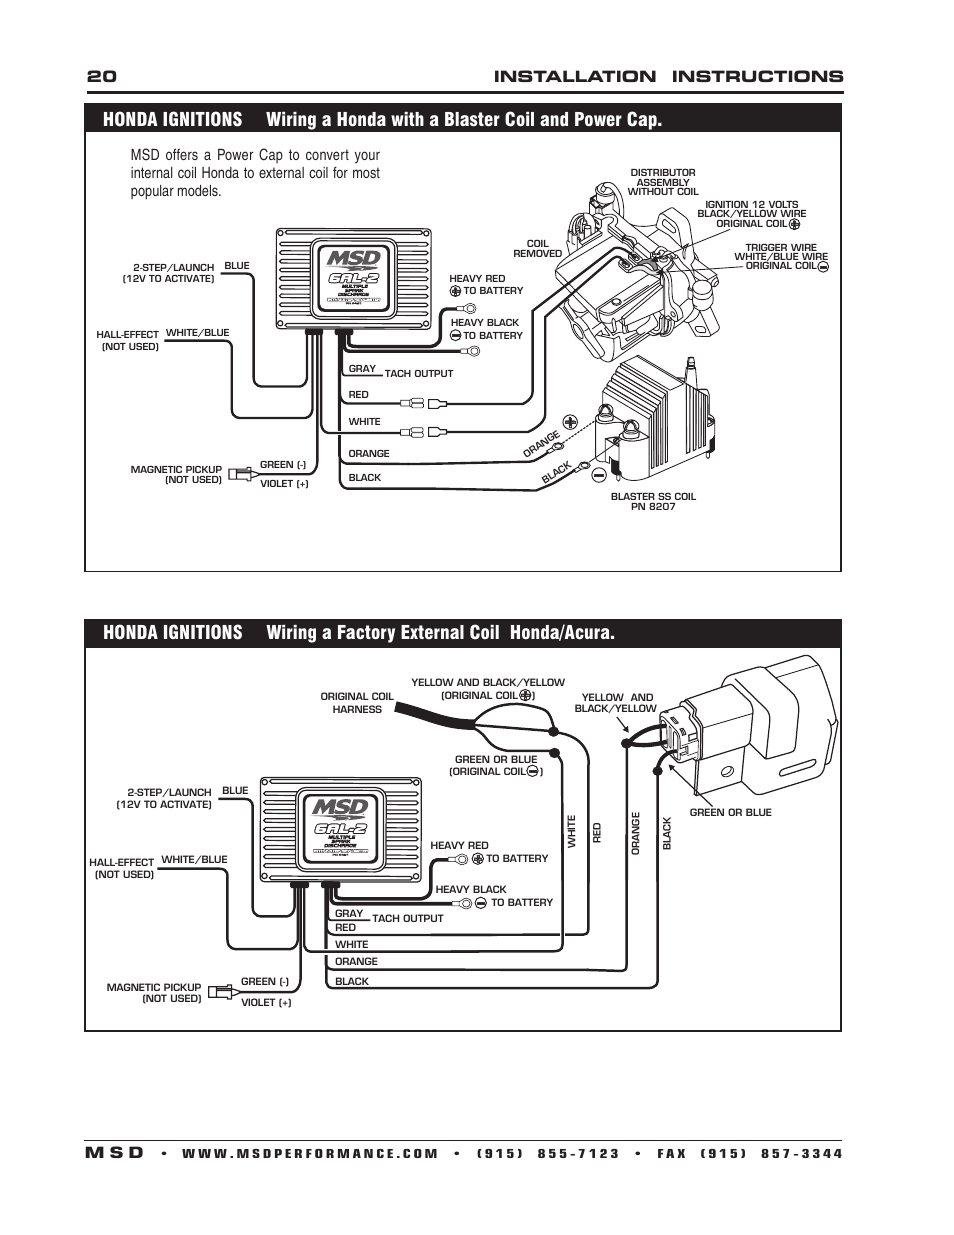 medium resolution of 20 installation instructions m s d msd 6421 6al 2 ignition control installation user manual page 20 28